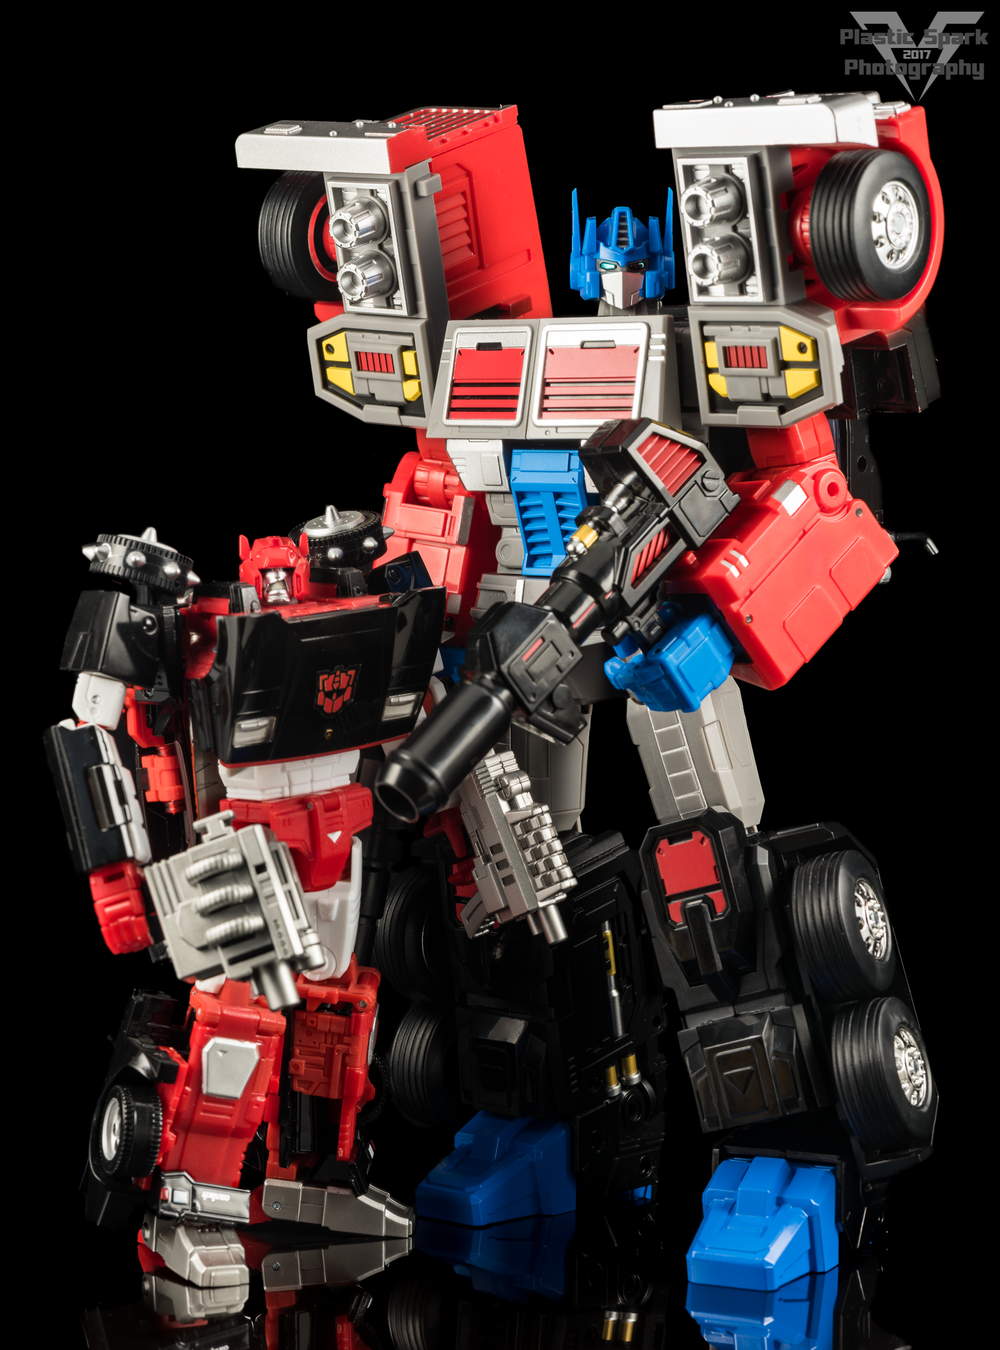 Fans-Hobby-MB-04-Gunfighter-II-(44-of-61).png